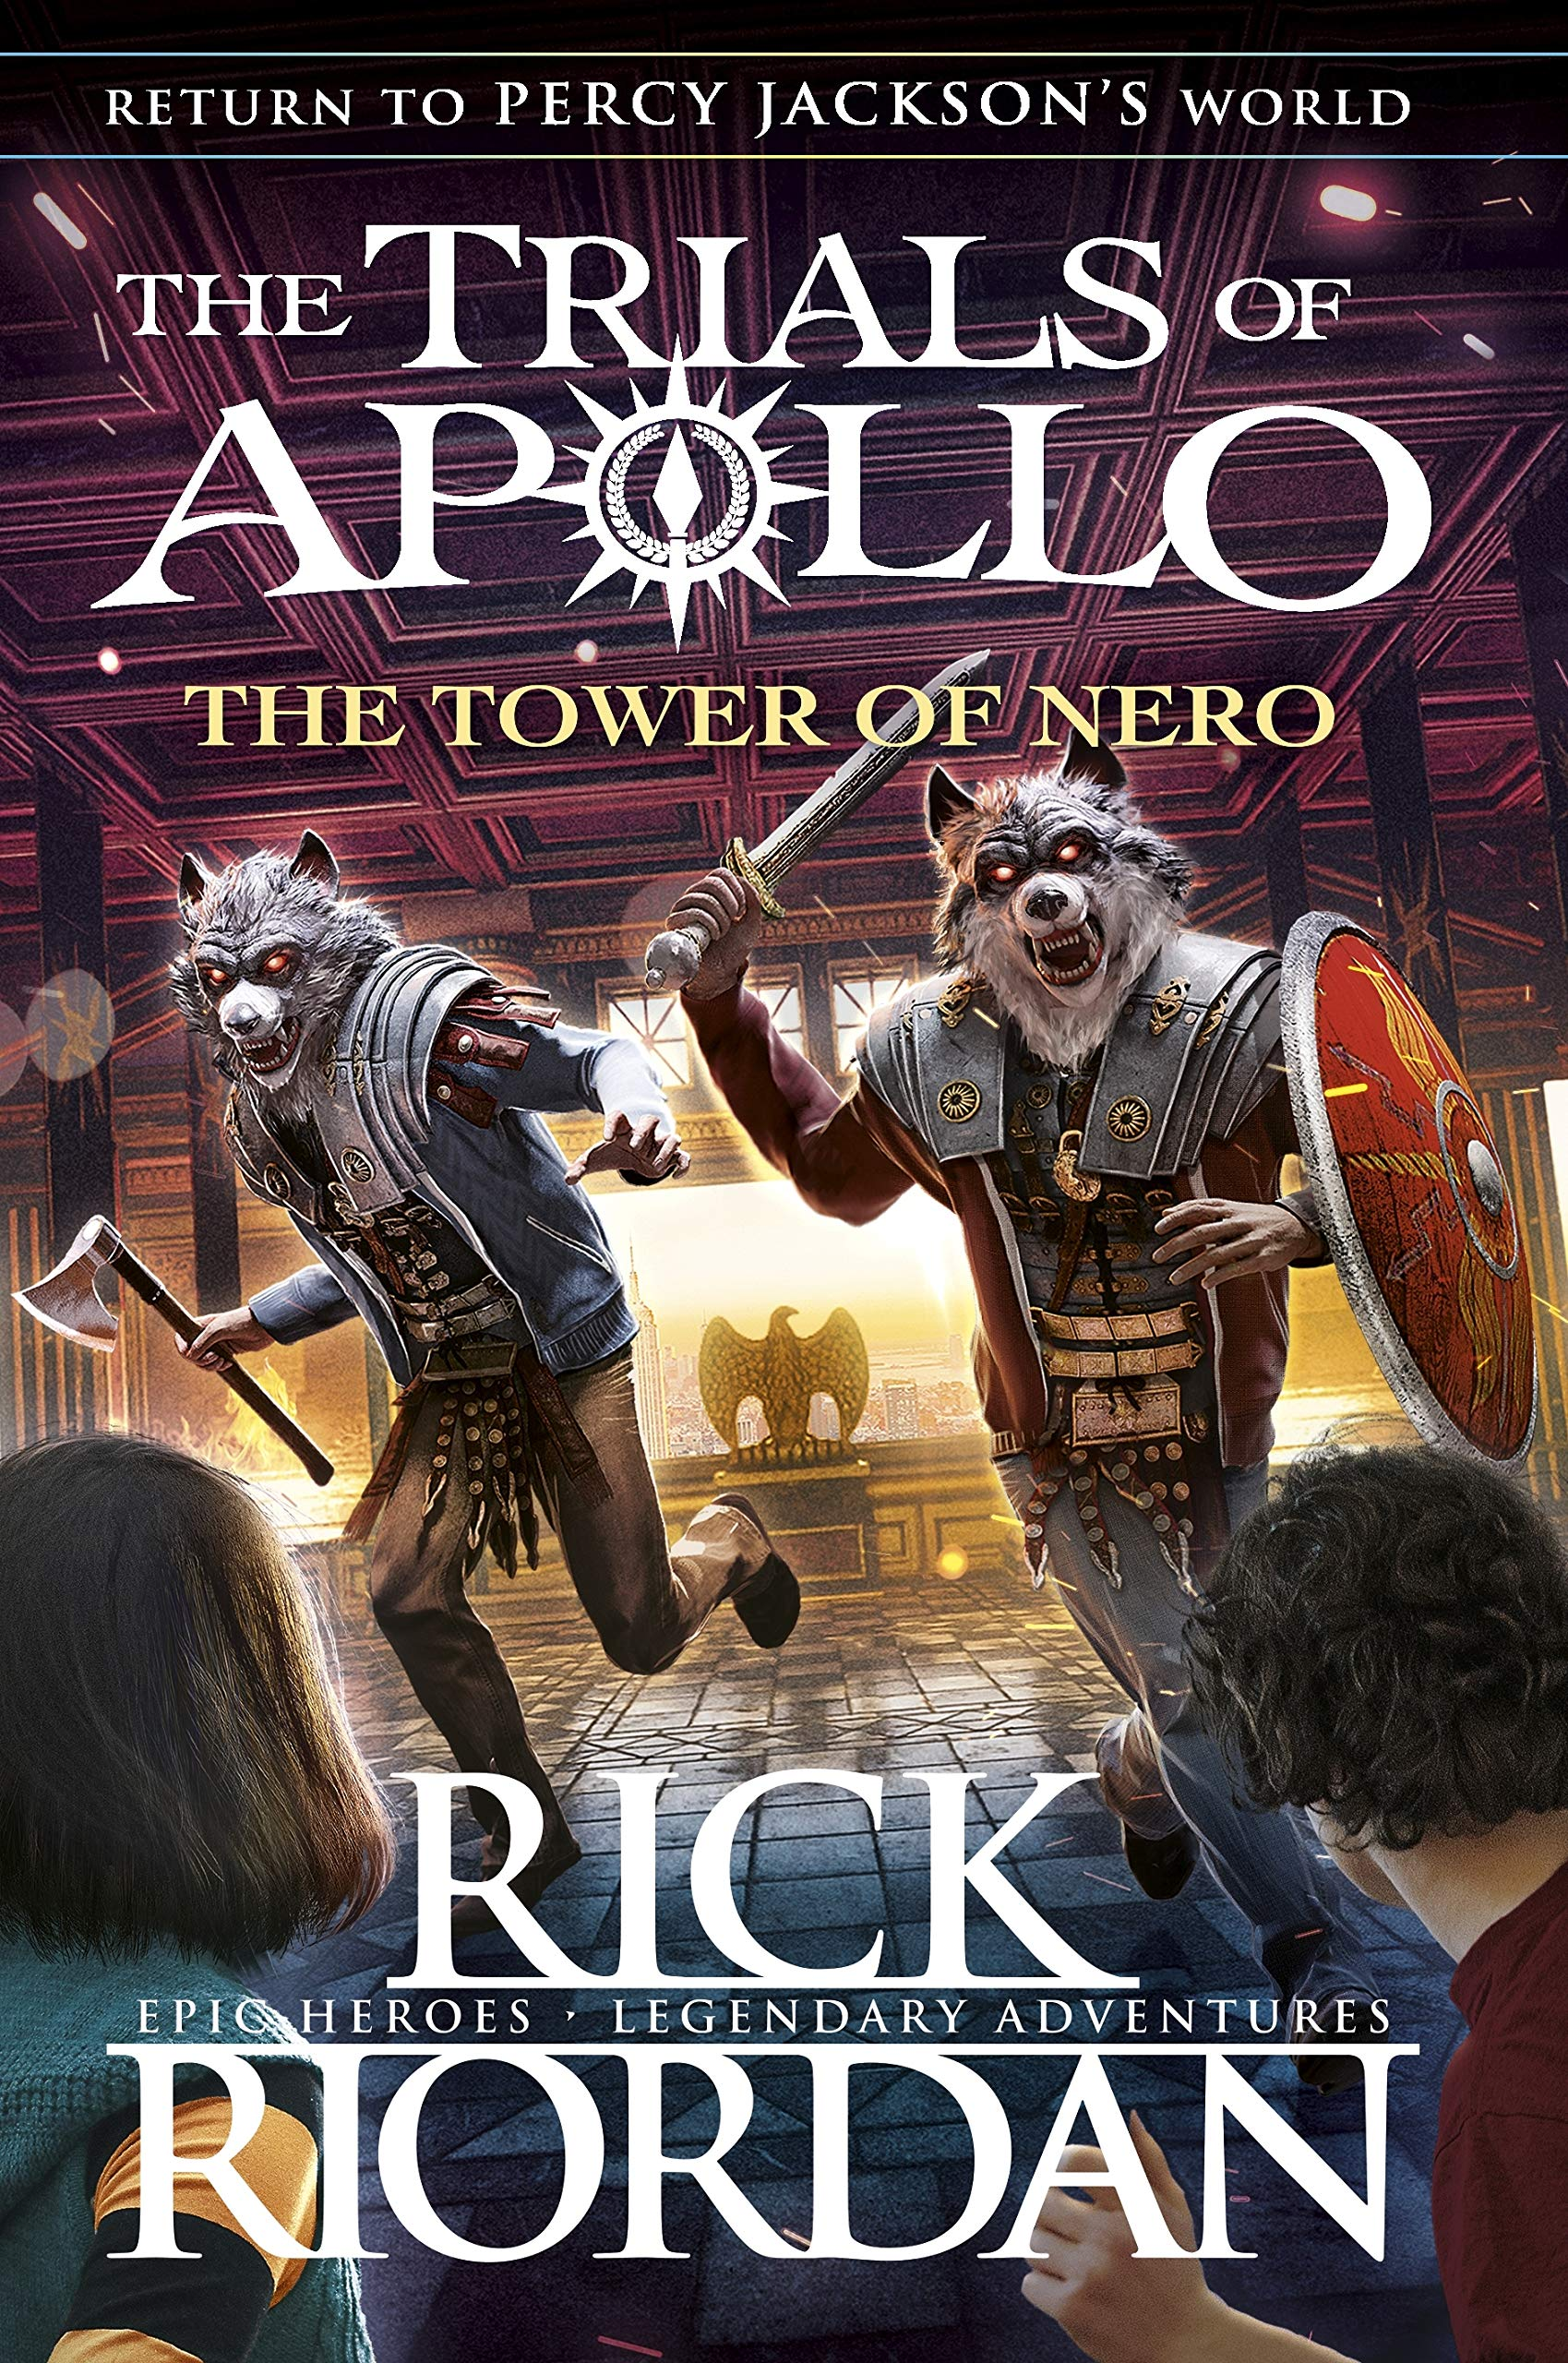 Buy The Tower of Nero (The Trials of Apollo Book 5) Book Online at Low  Prices in India | The Tower of Nero (The Trials of Apollo Book 5) Reviews &  Ratings - Amazon.in